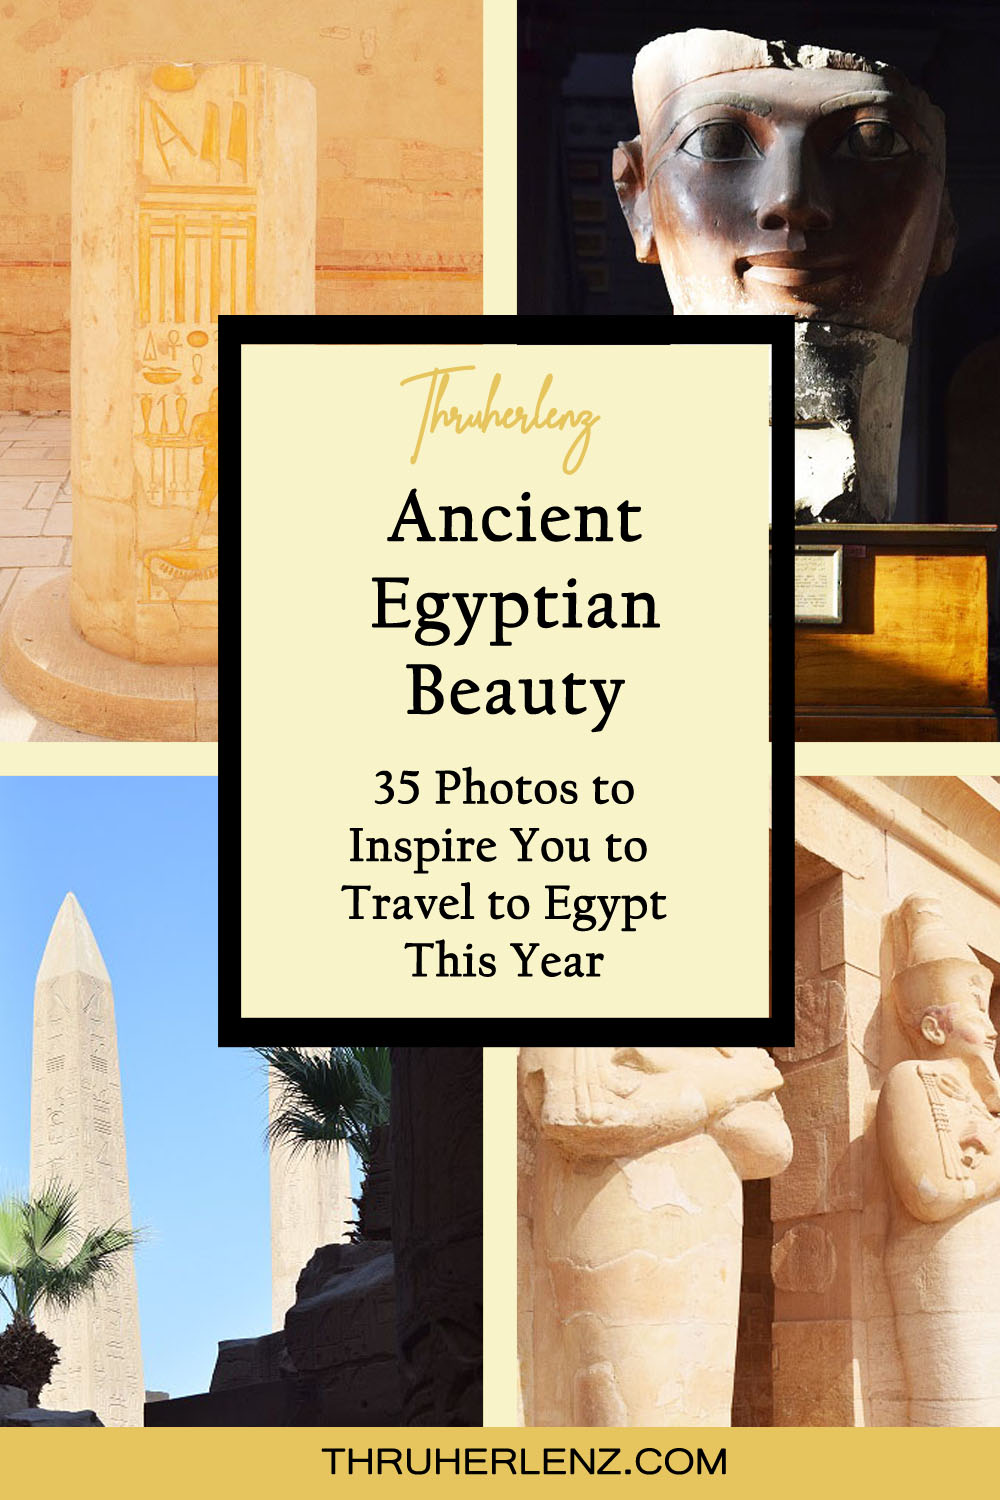 Photos to Inspire You to Travel to Egypt This Year!